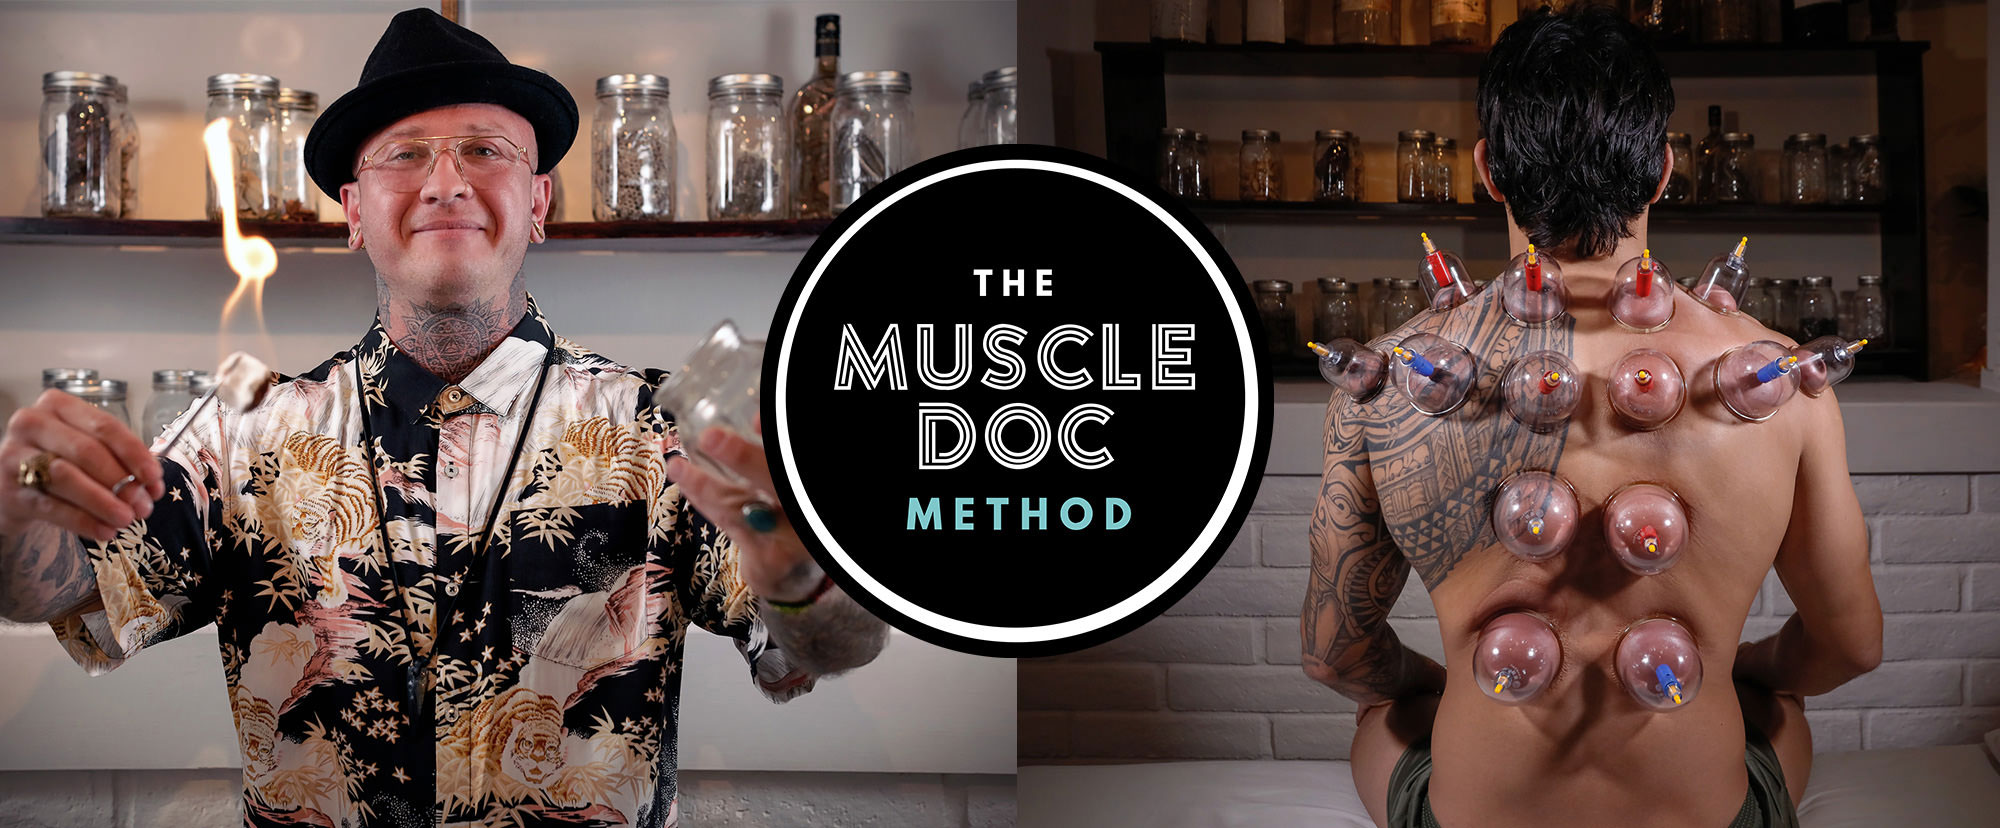 The Muscle Doc Method - Main Banner